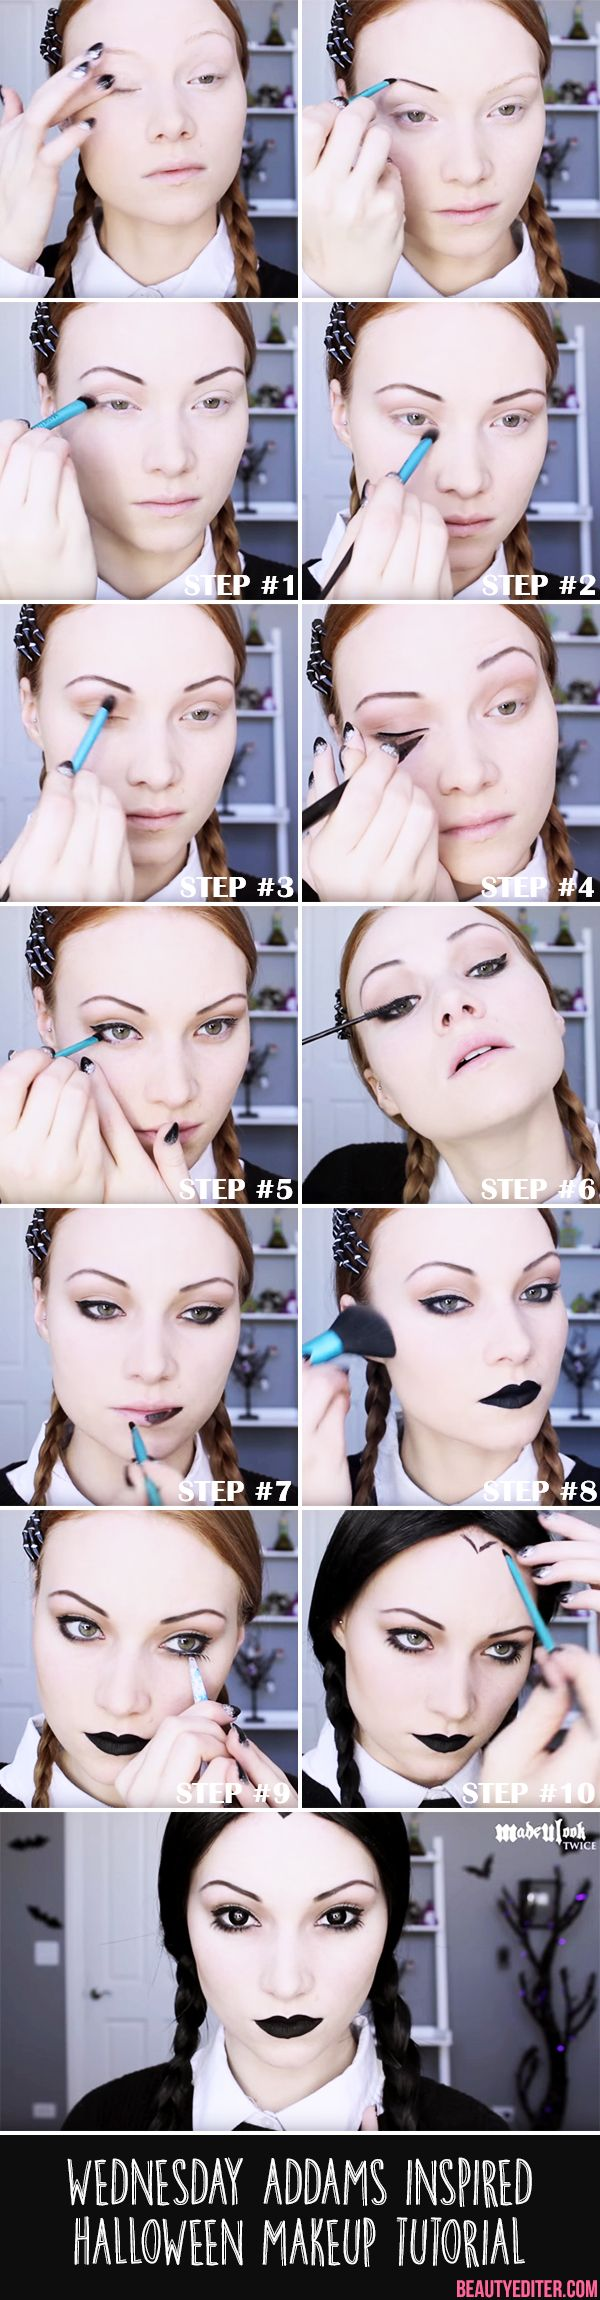 Wednesday Addams Halloween Makeup (Hair Braids Boxer)